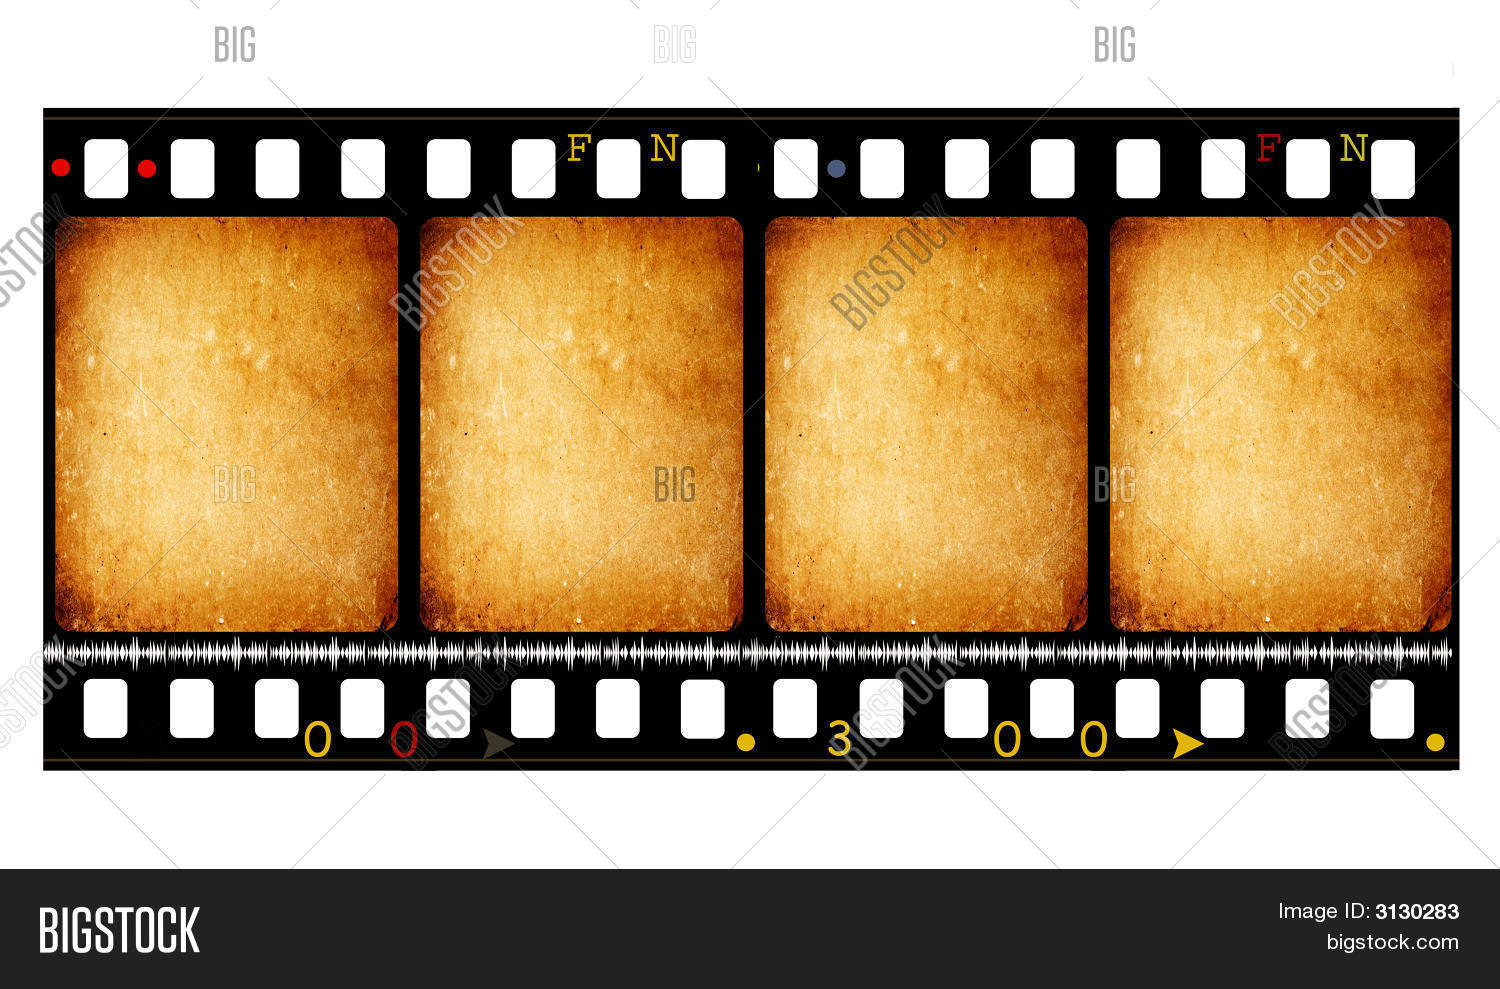 Old 35 Mm Movie Film Image & Photo (Free Trial)